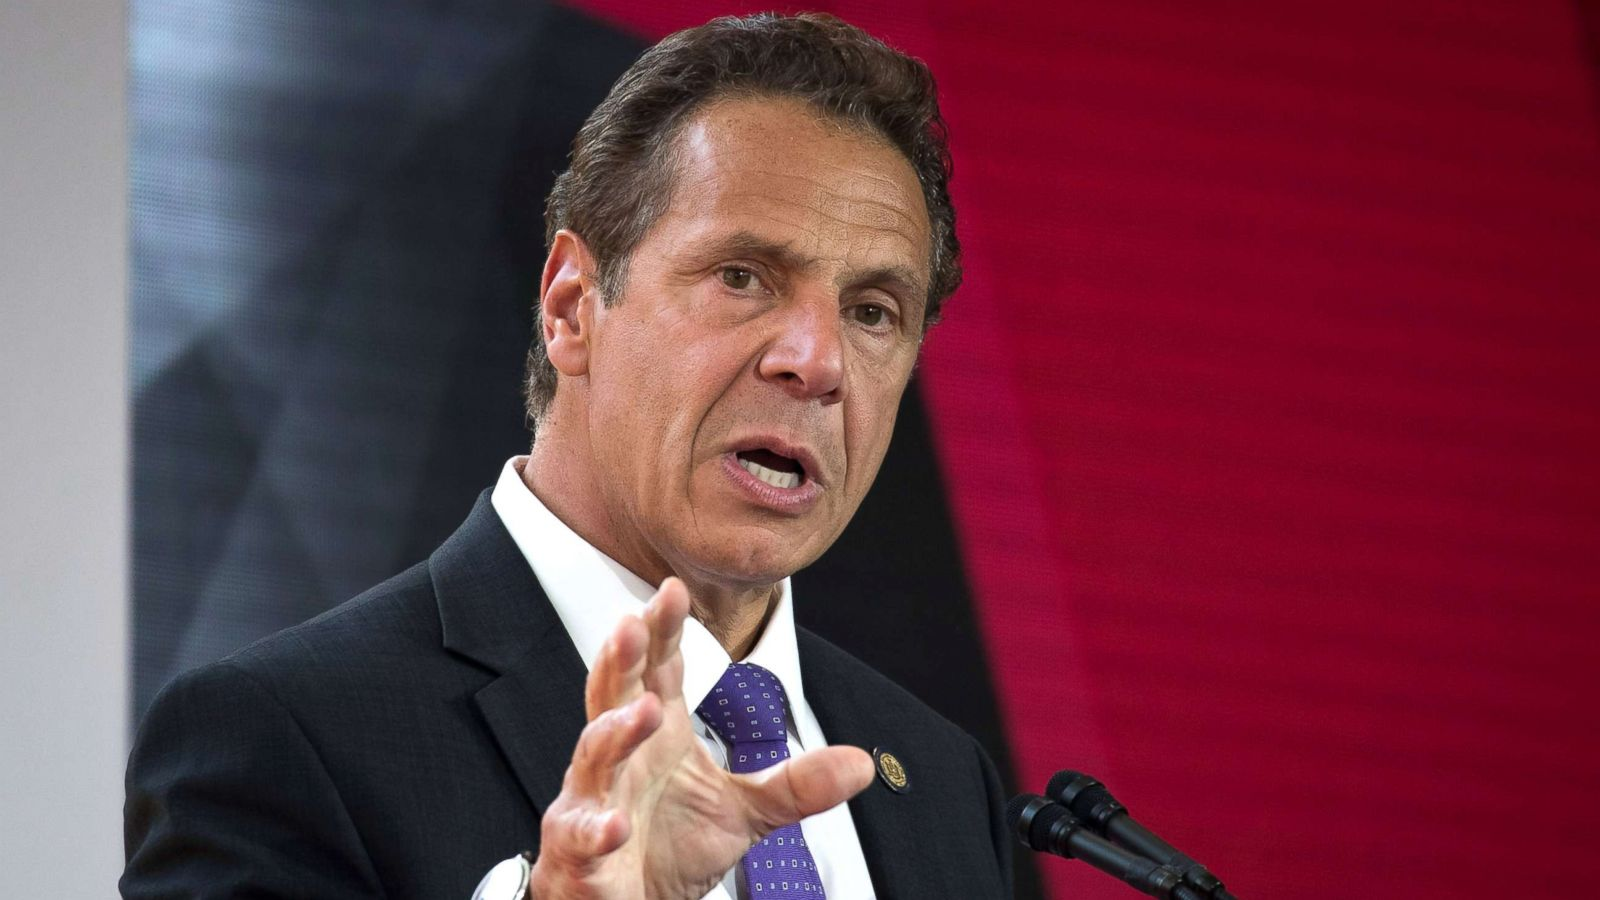 NY Bill Would Require Gun Owners to Carry $1M Insurance Policies